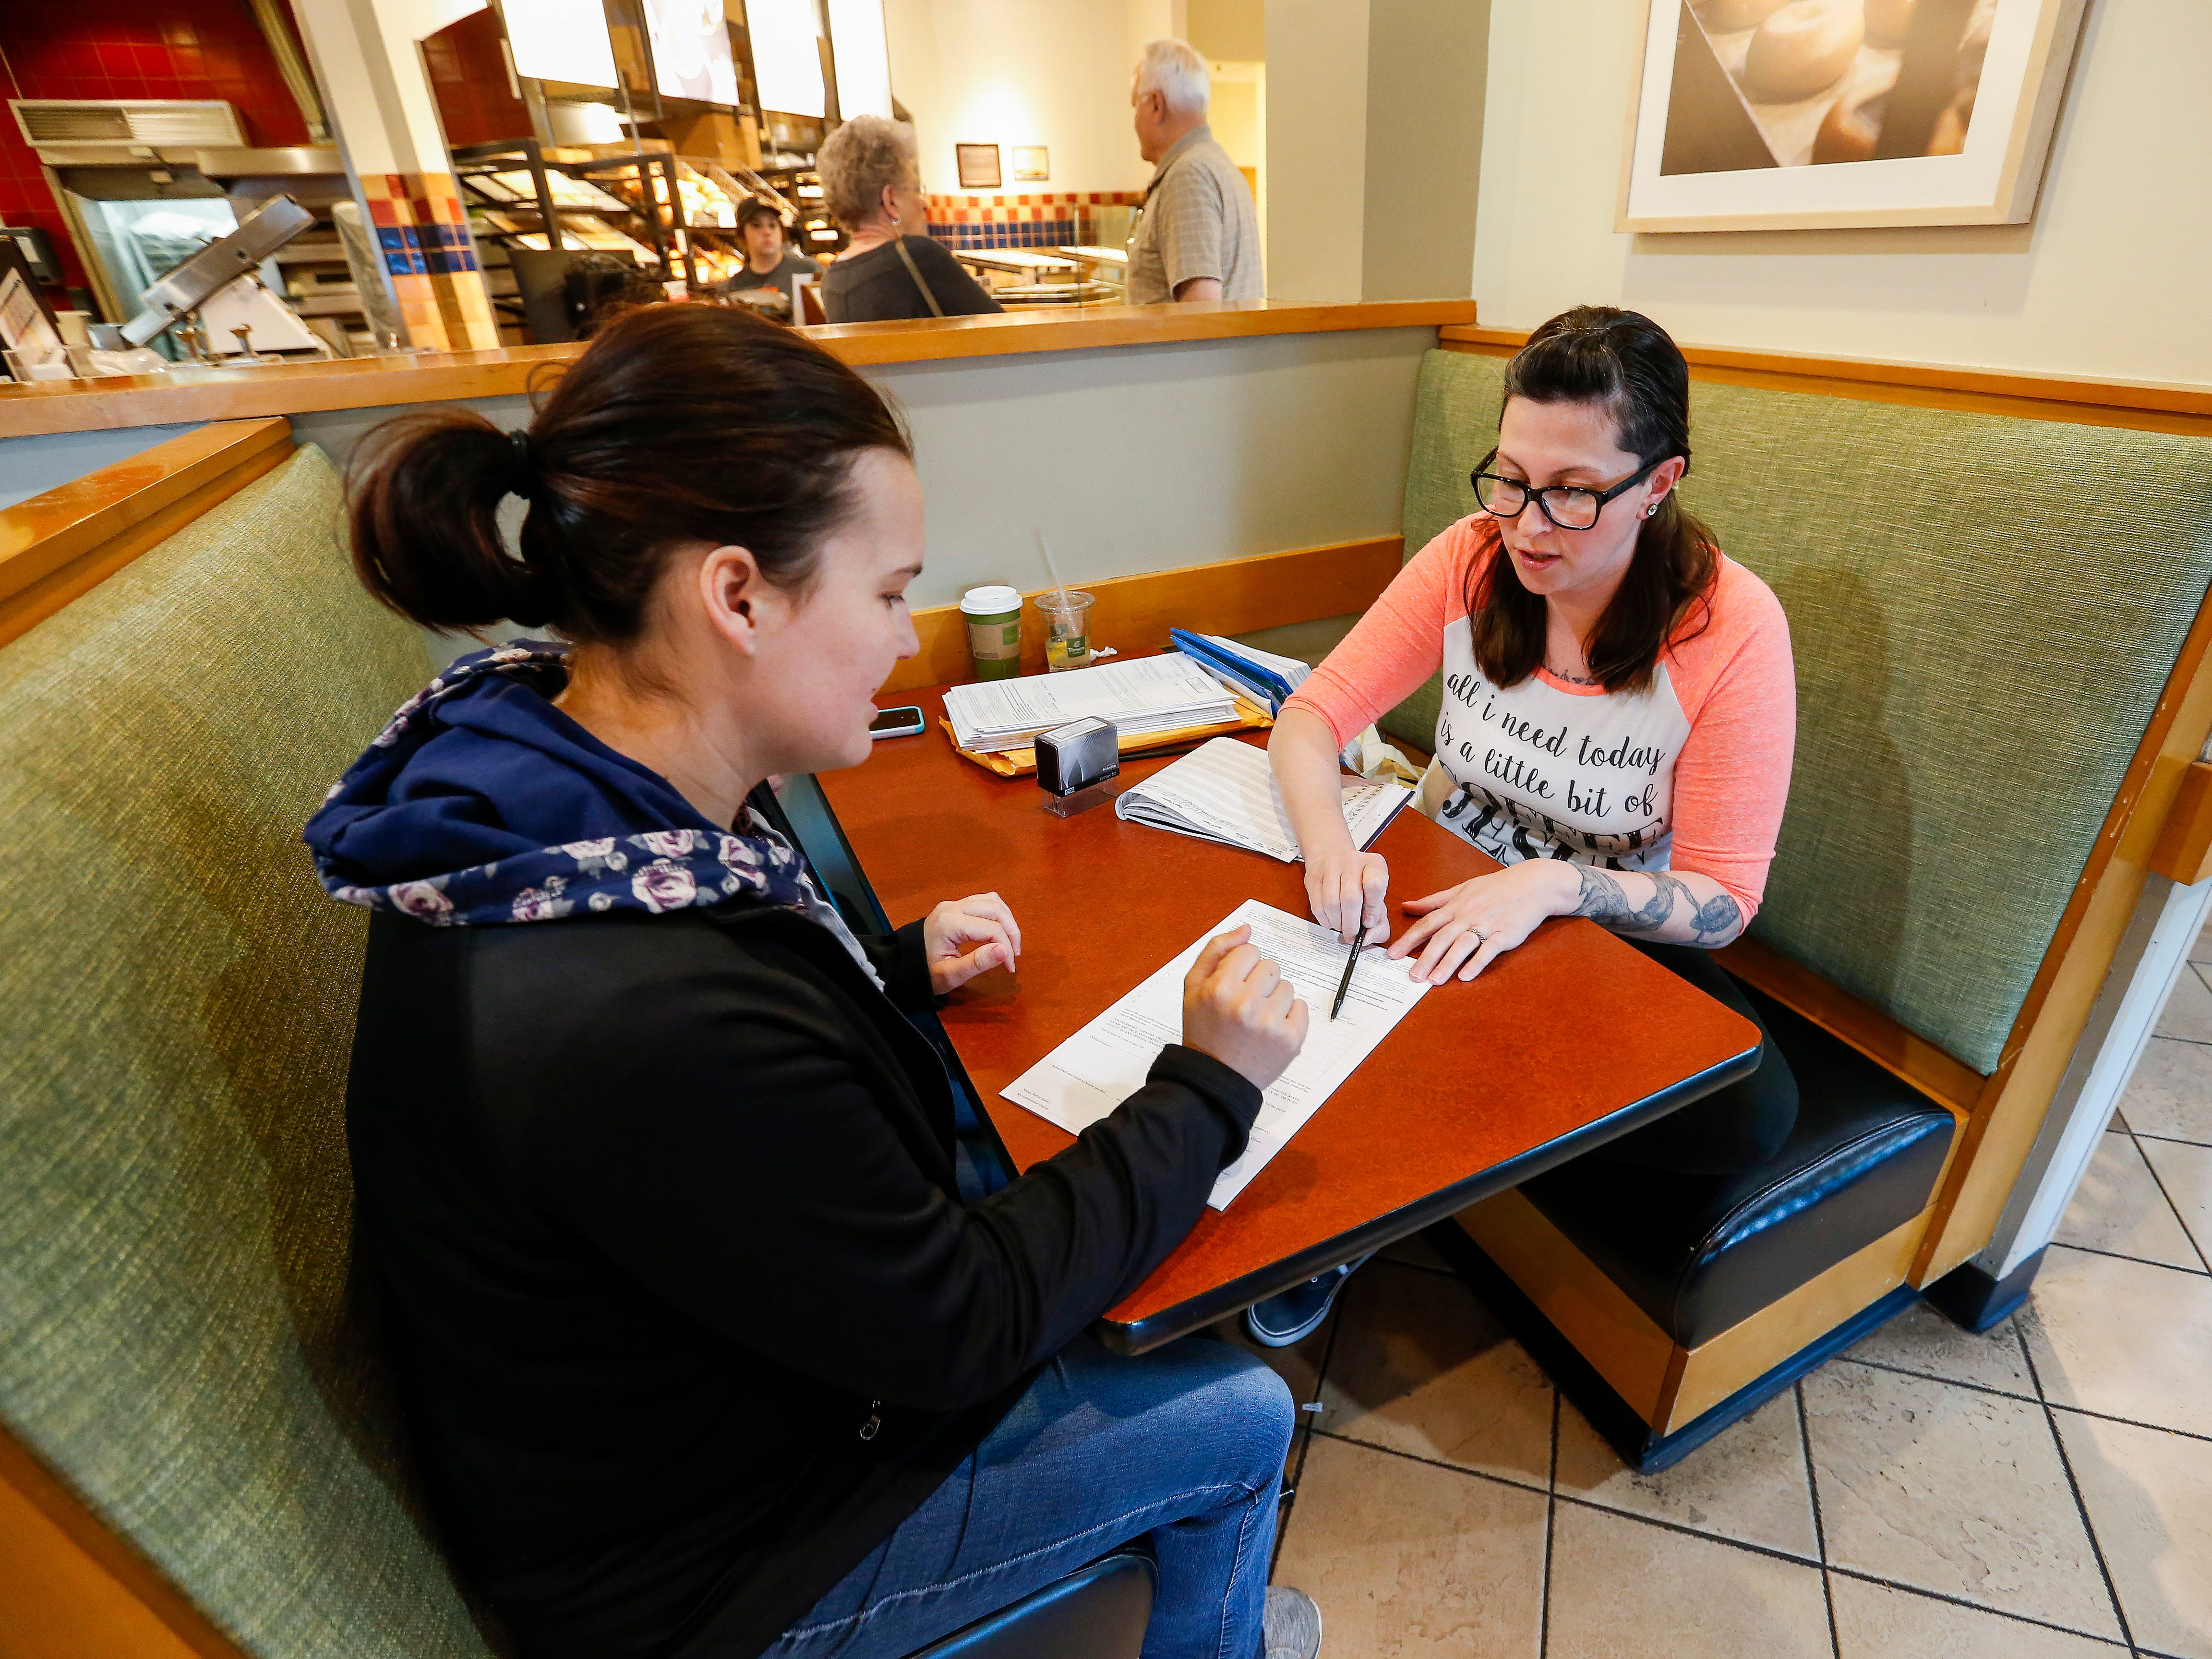 Ashley Markum shows Chelsea Joy, of Elkland, where to sign the petition to get the New Approach Missouri medical marijuana amendment on the November ballot at Panera on Saturday, April 28, 2018.